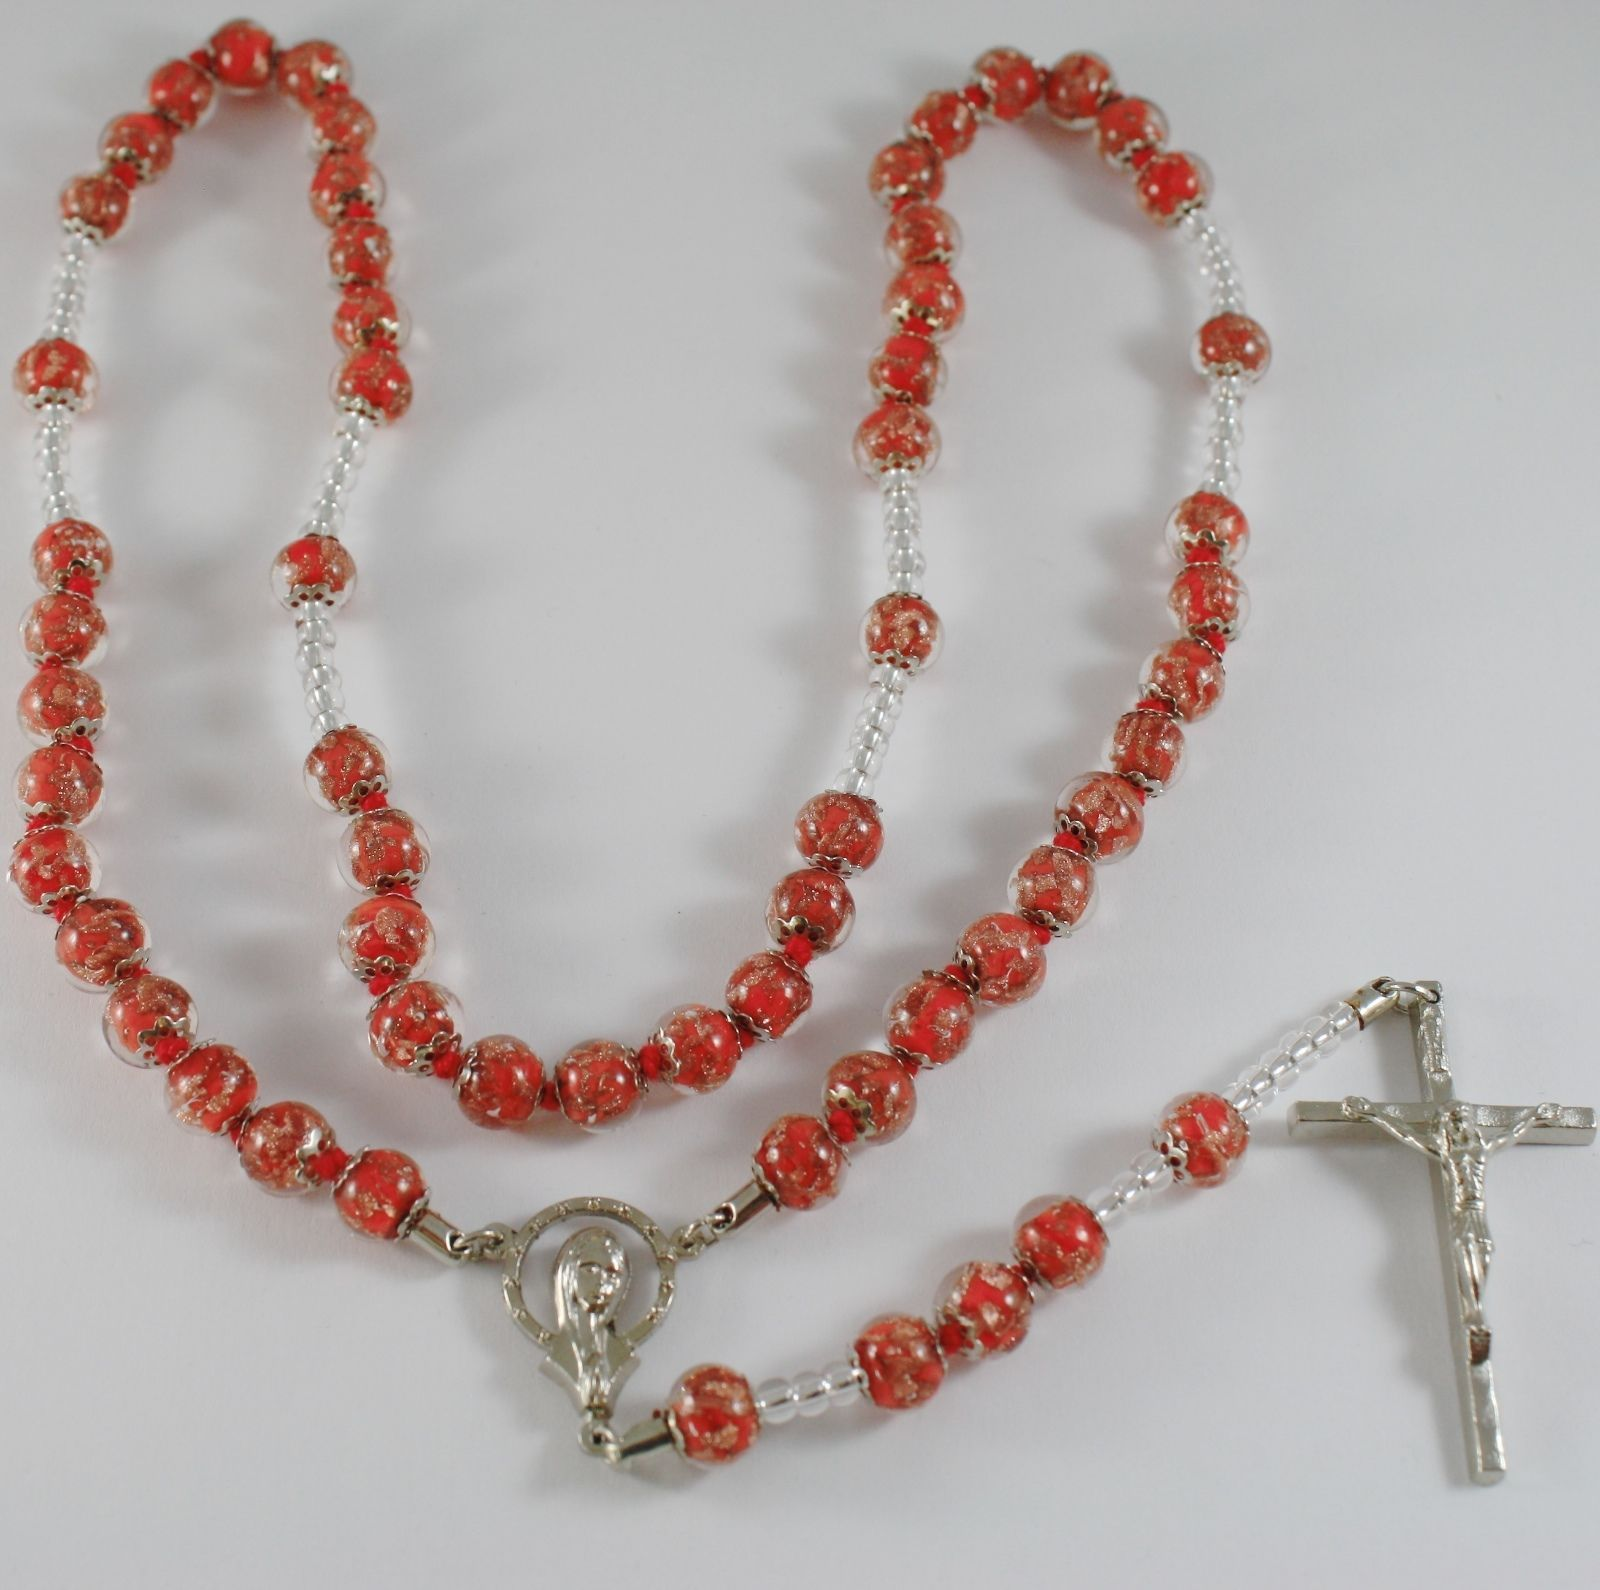 ANTICA MURRINA VENEZIA ROSARY NECKLACE, RED, VIRGIN MARY JESUS CROSS 27.5 INCH.